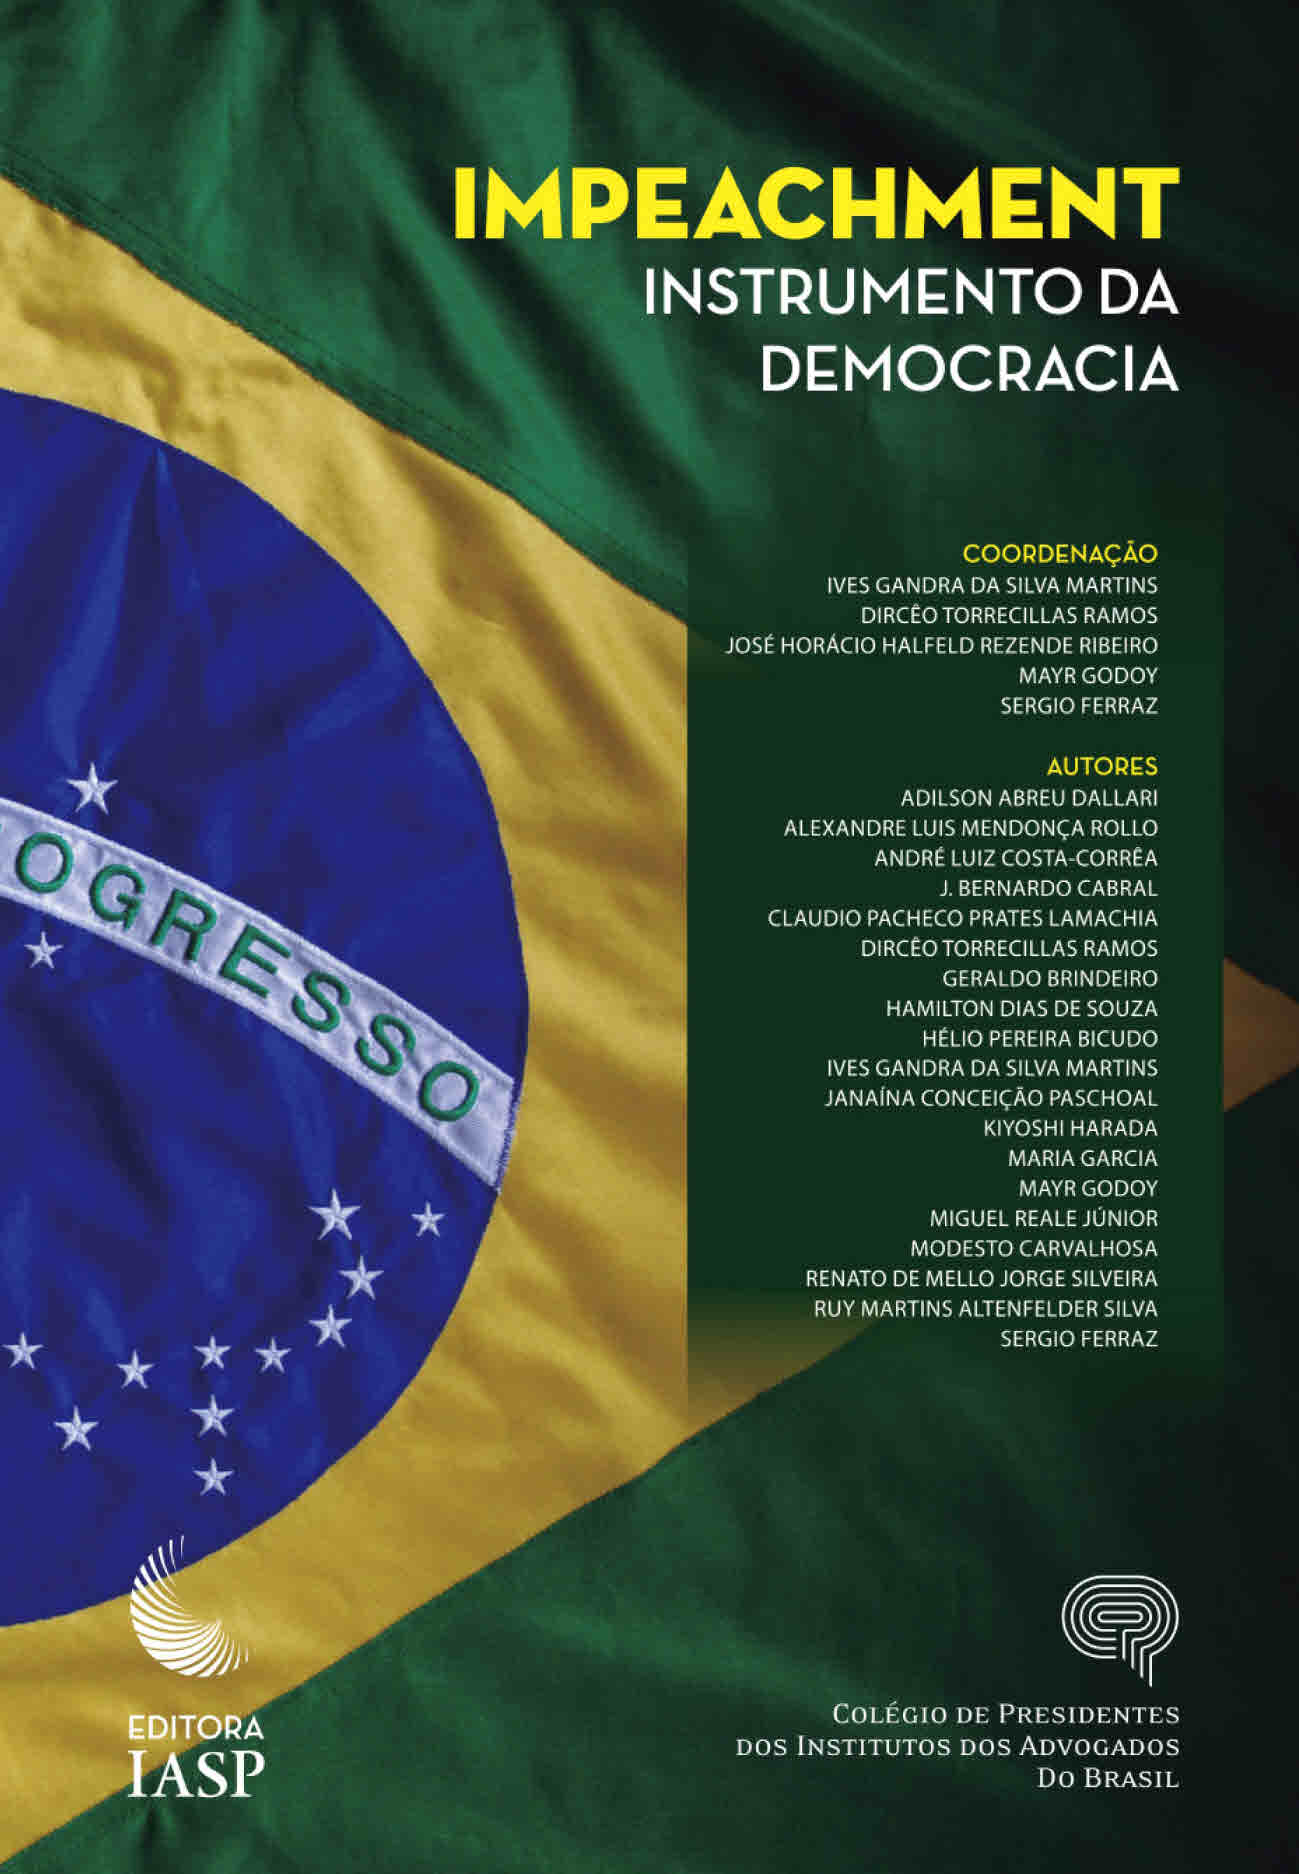 Impeachment: instrumento da democracia